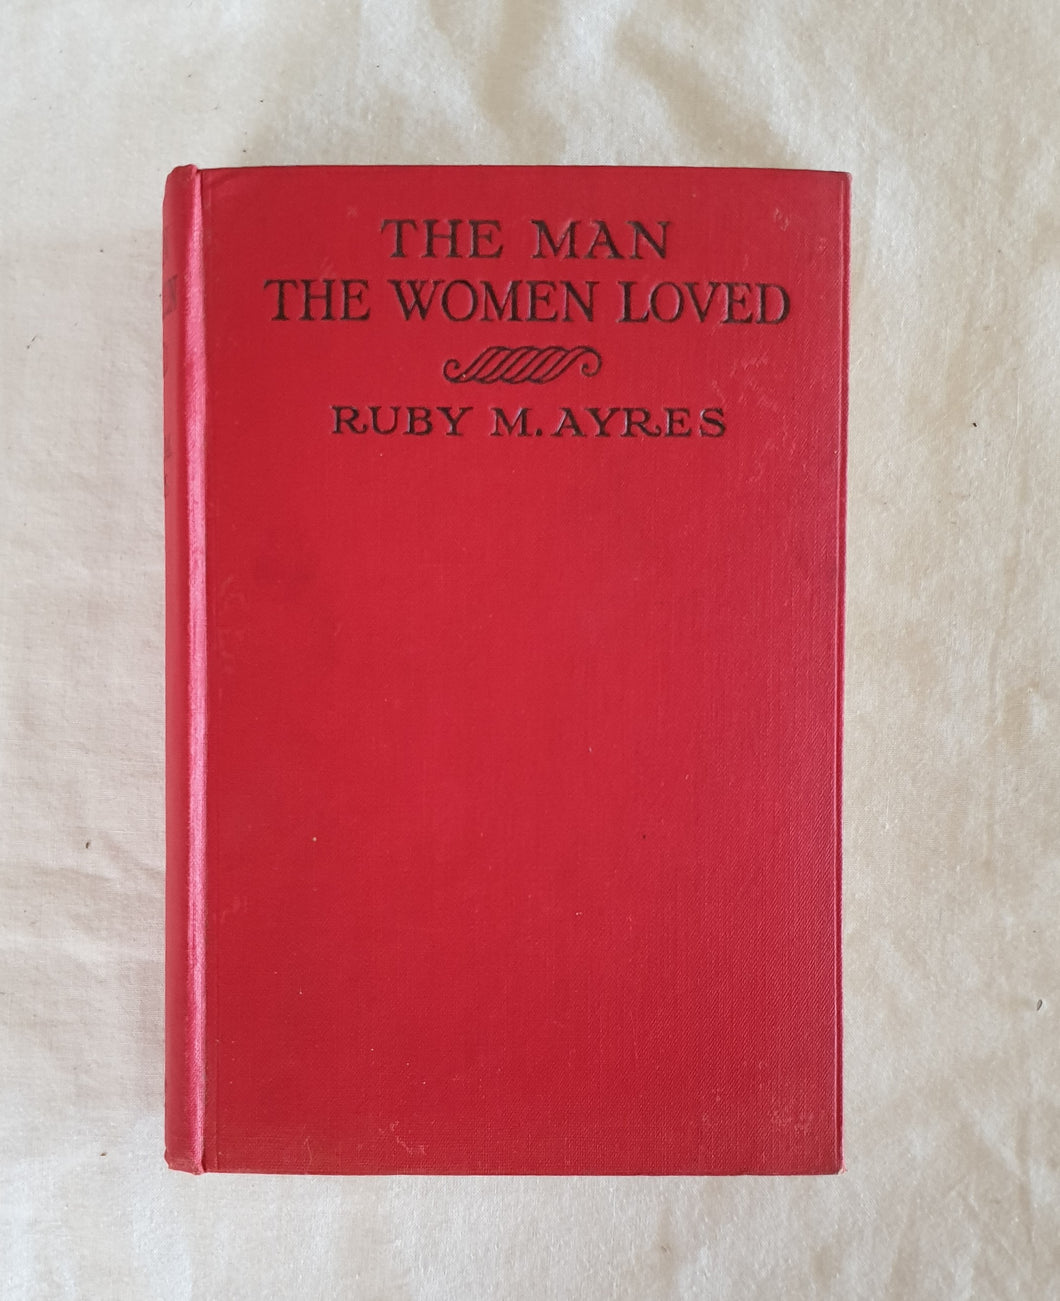 The Man the Women Loved by Ruby M. Ayres